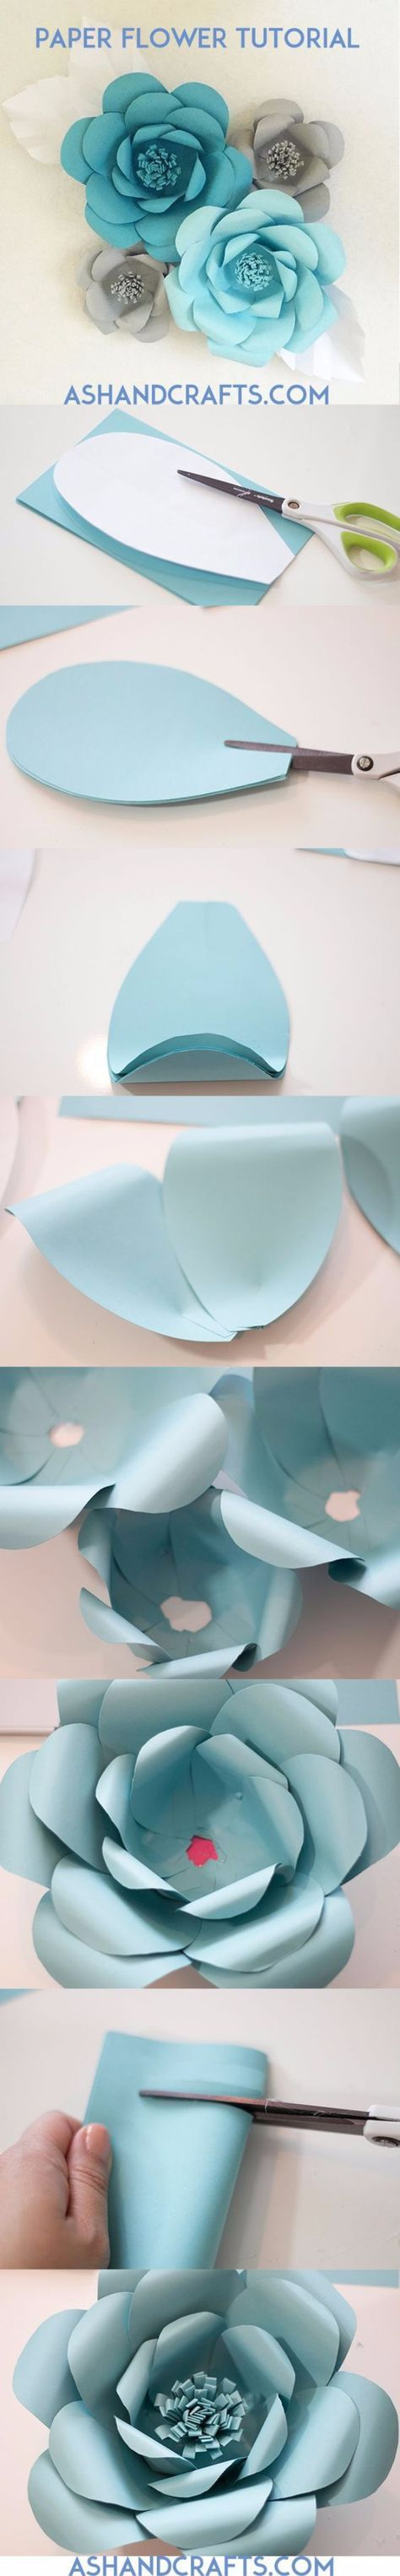 39 Easy DIY Party Decorations - Paper Flower Backdrop - Quick And Cheap Party Decors, Easy Ideas For DIY Party Decor, Birthday Decorations, Budget Do It Yourself Party Decorations http://diyjoy.com/easy-diy-party-decorations